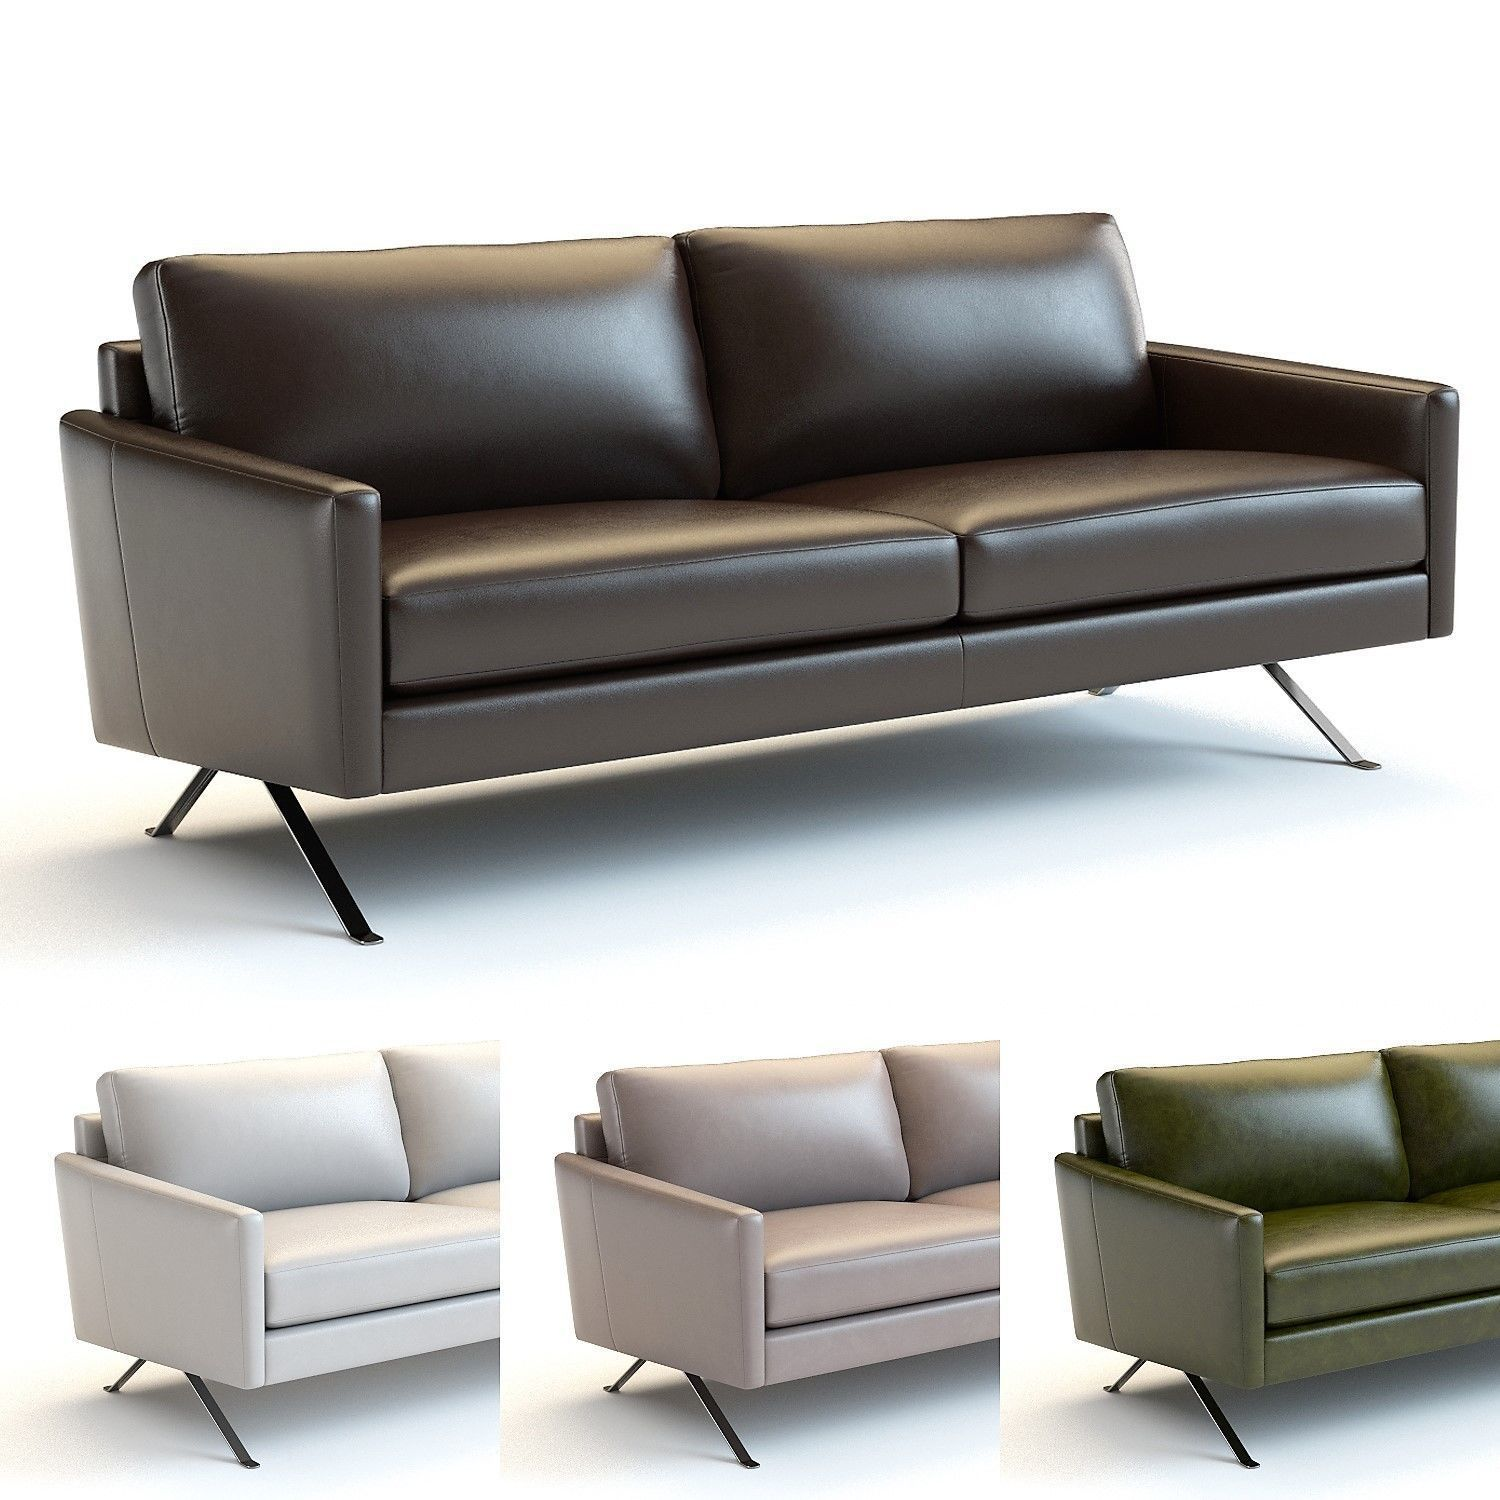 Terrific West Elm Angled Arm Leather Sofa 3D Model Unemploymentrelief Wooden Chair Designs For Living Room Unemploymentrelieforg